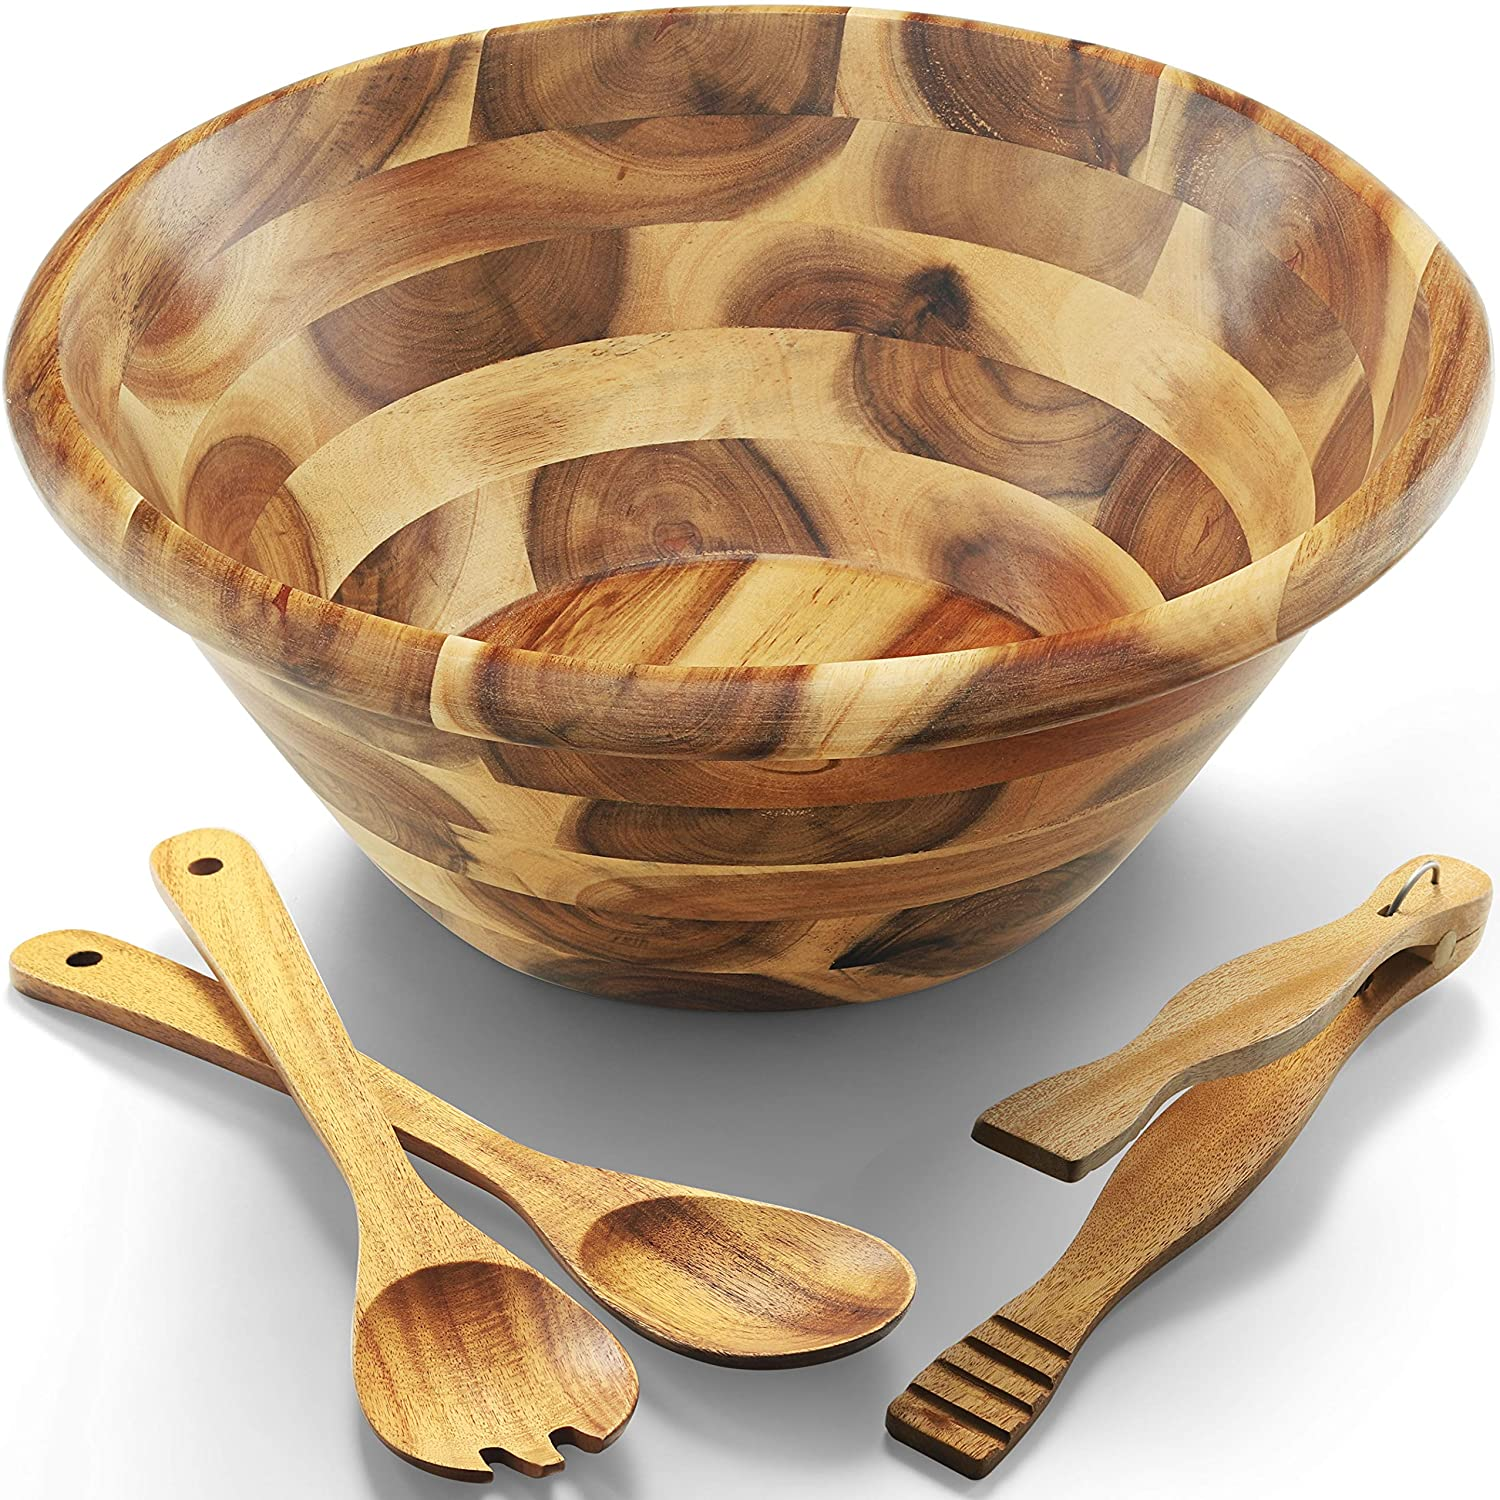 christmas-gift-ideas-for-couples-bowl